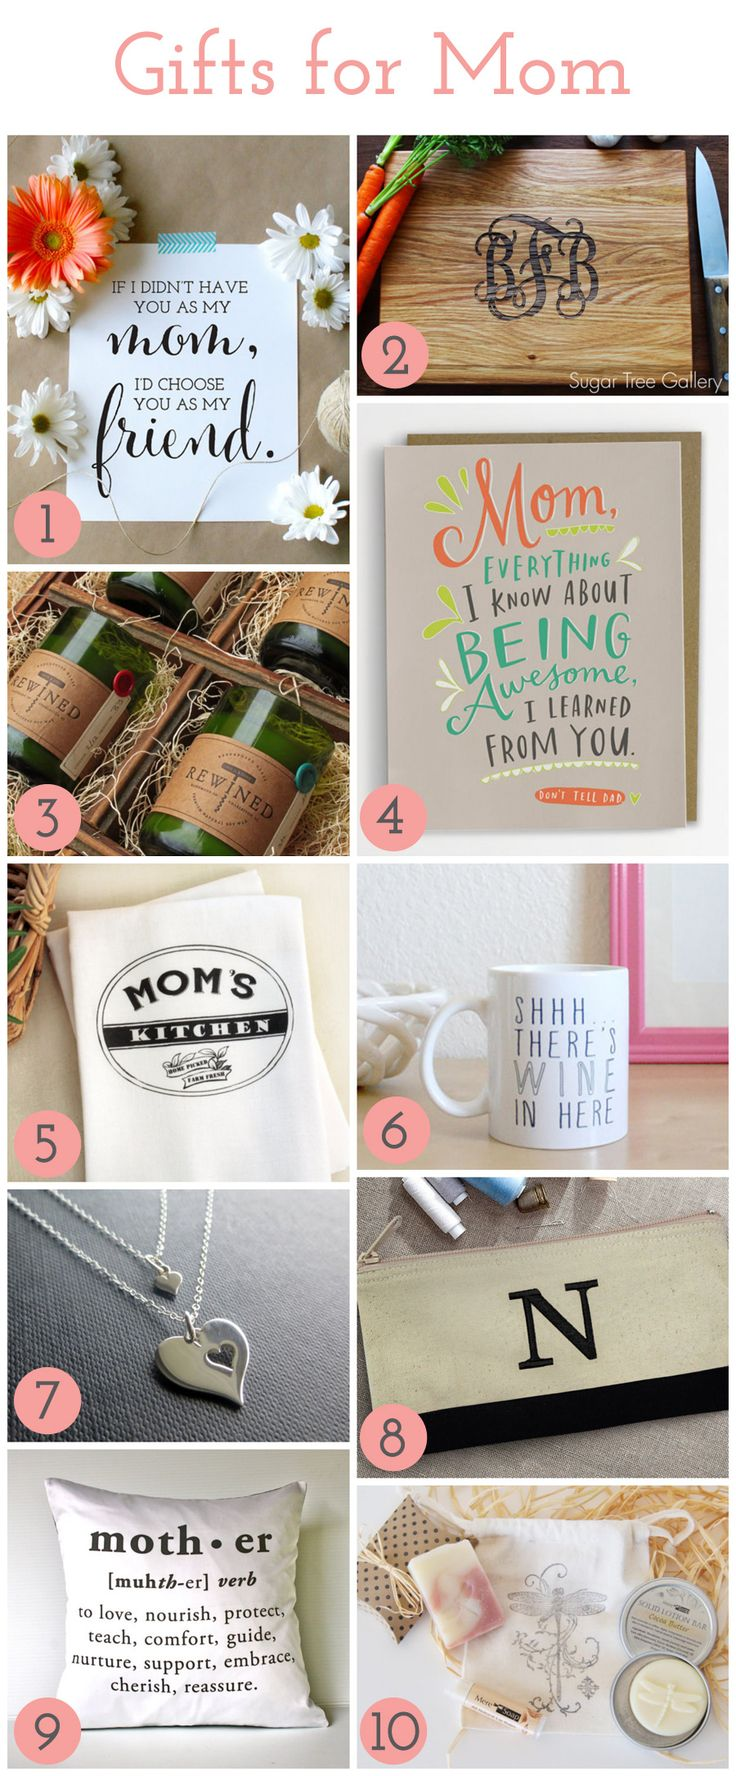 Best of Etsy: 10 Unique Mother's Day Gifts She Will Adore | http://jillianastasia.com/mothers-day-gifts/